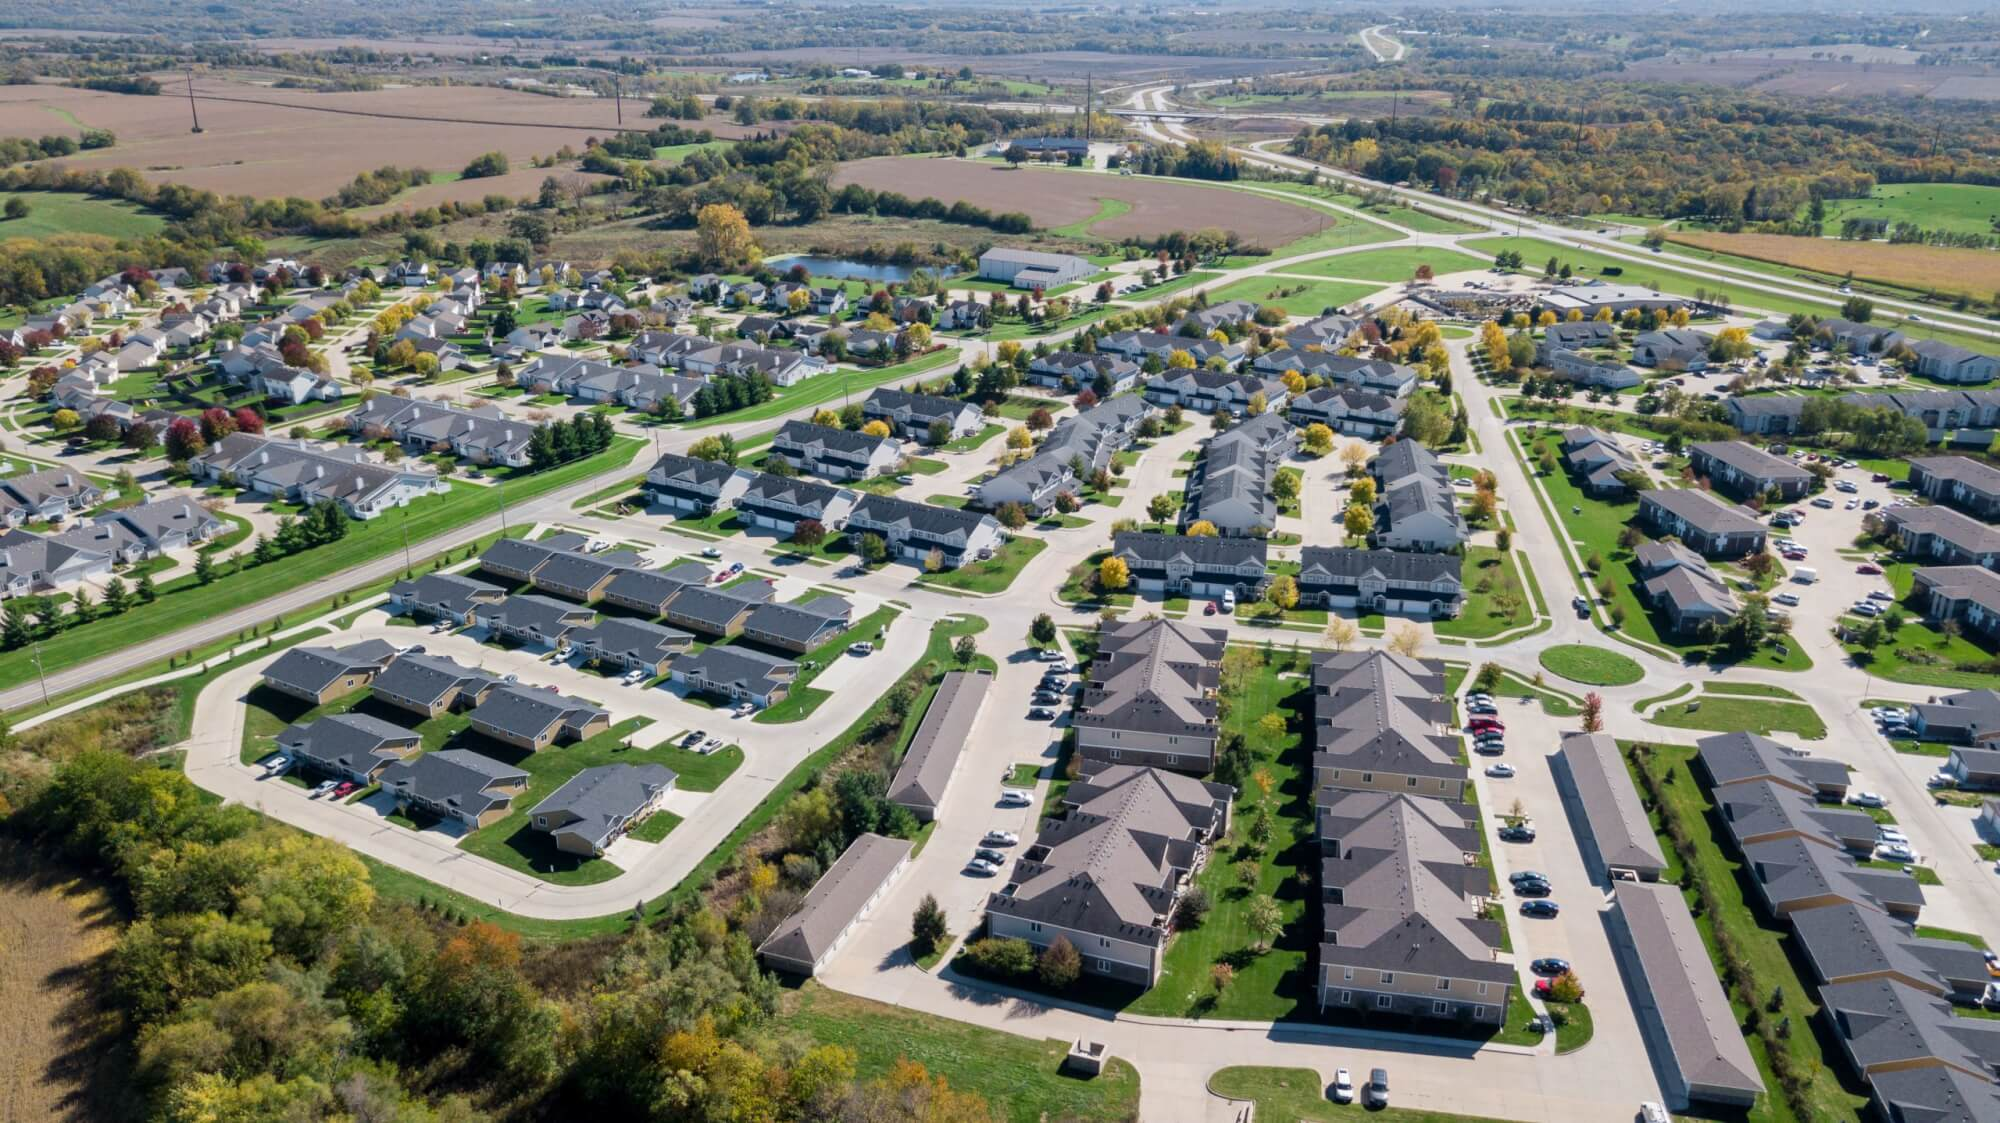 HOUSING – Large Suburban Development